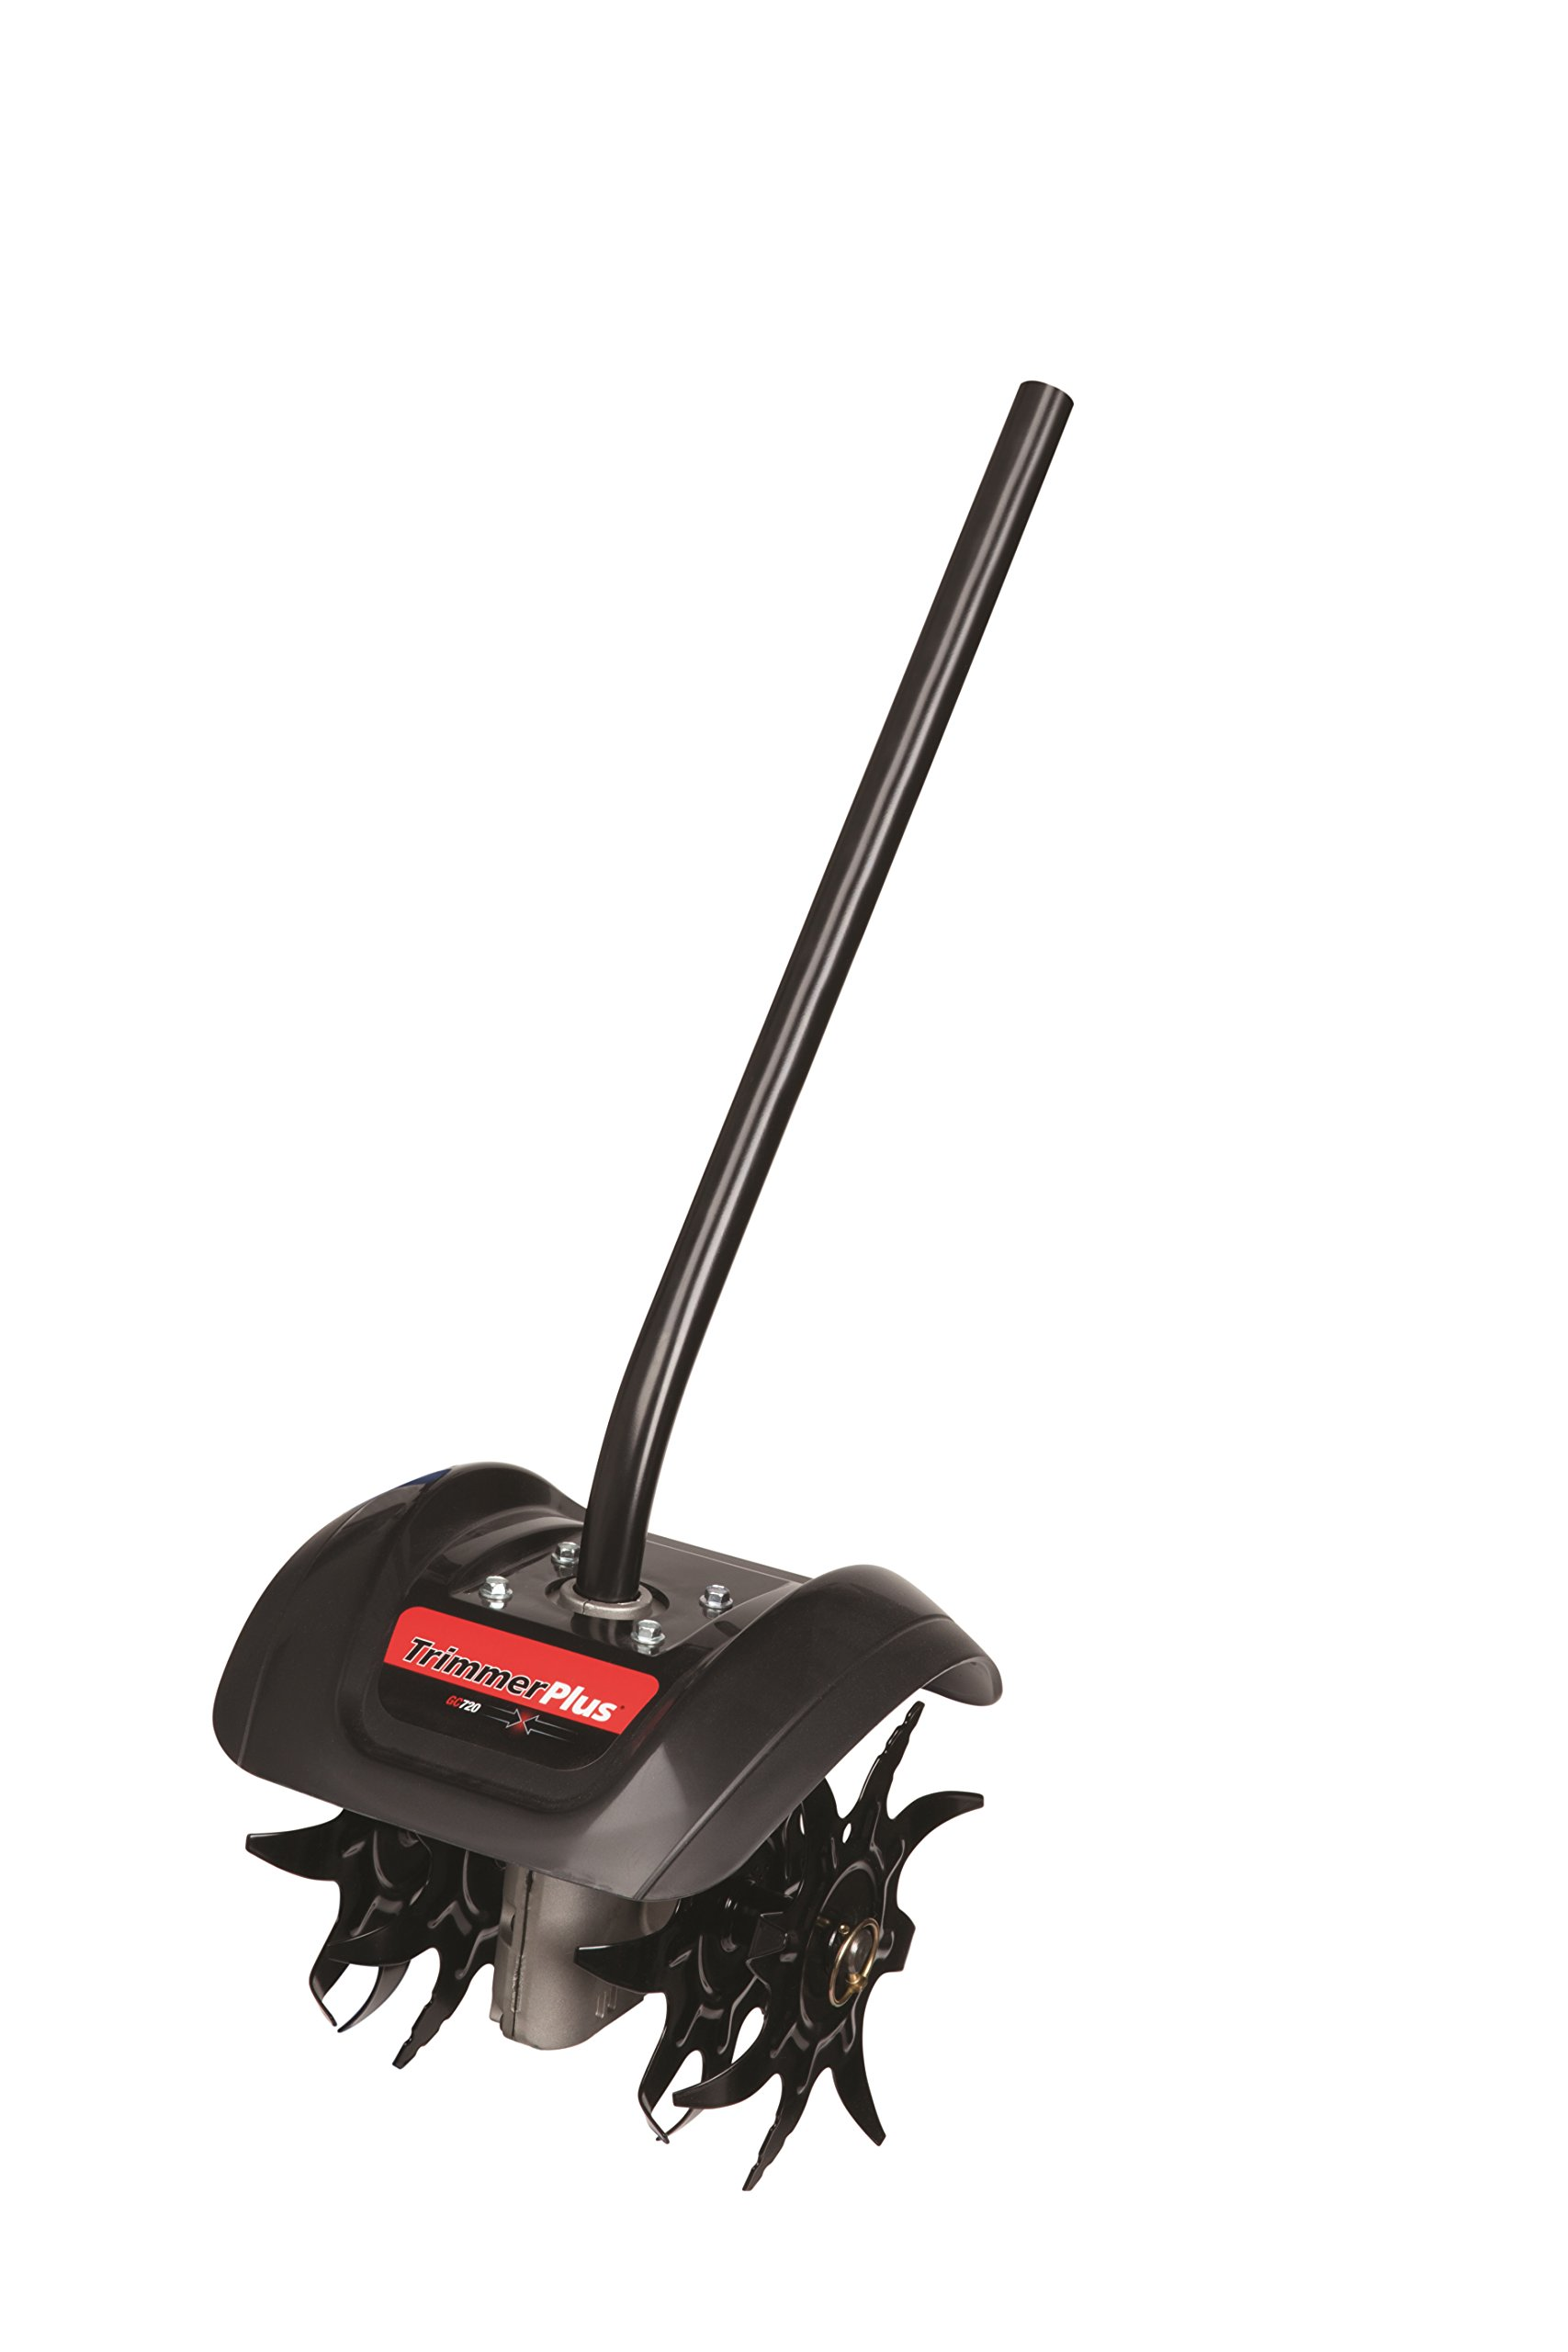 TrimmerPlus Cultivator Attachment Trimmers Powerheads